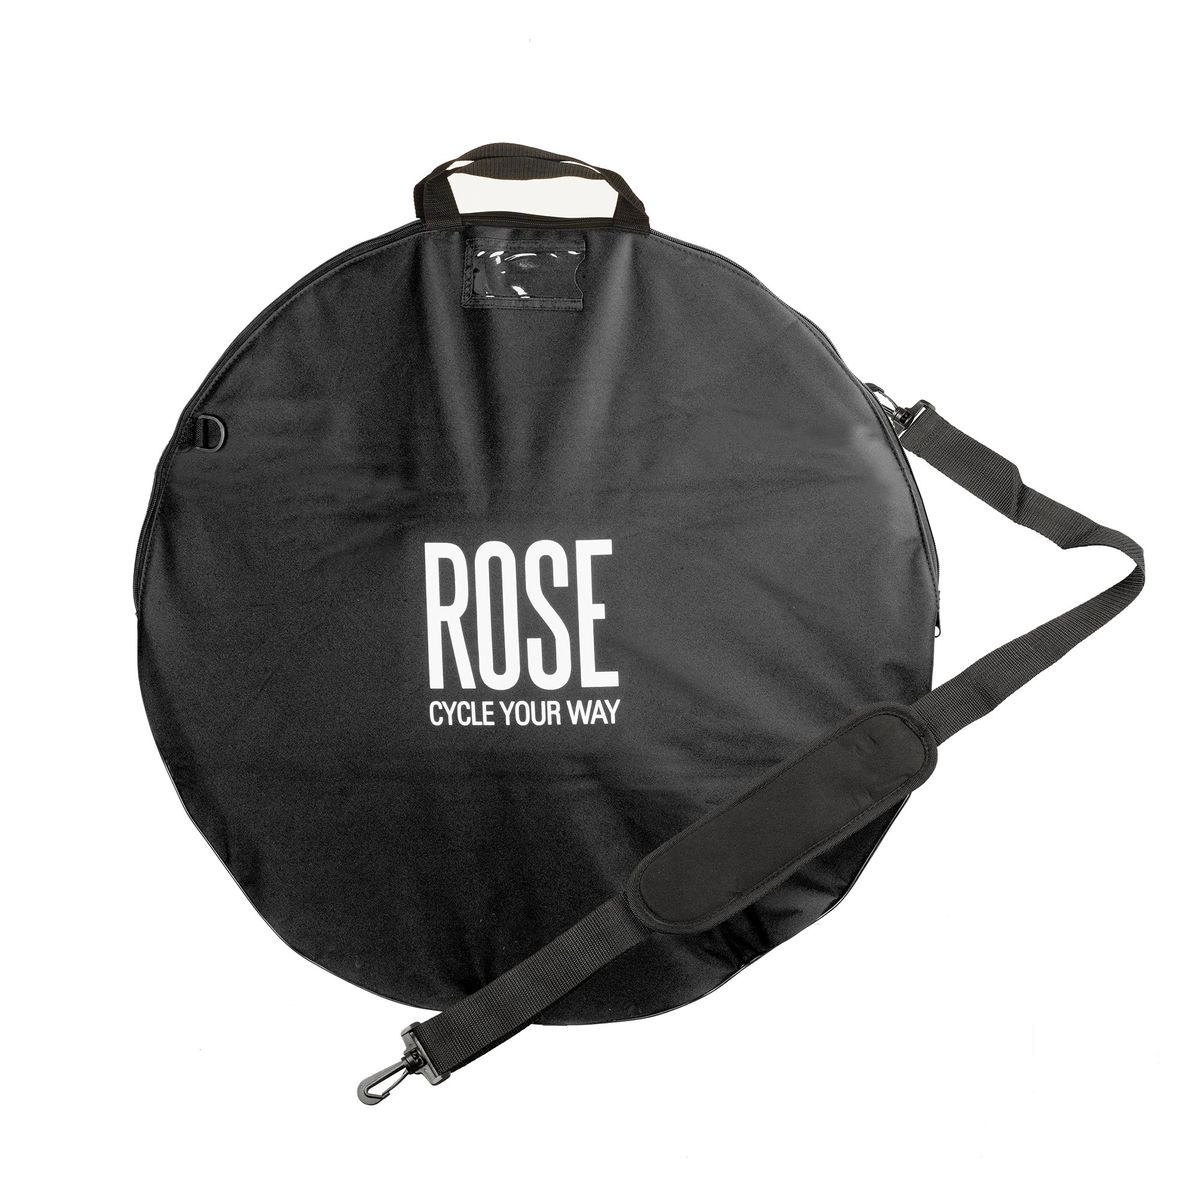 Wheel bag for 1 wheel 26